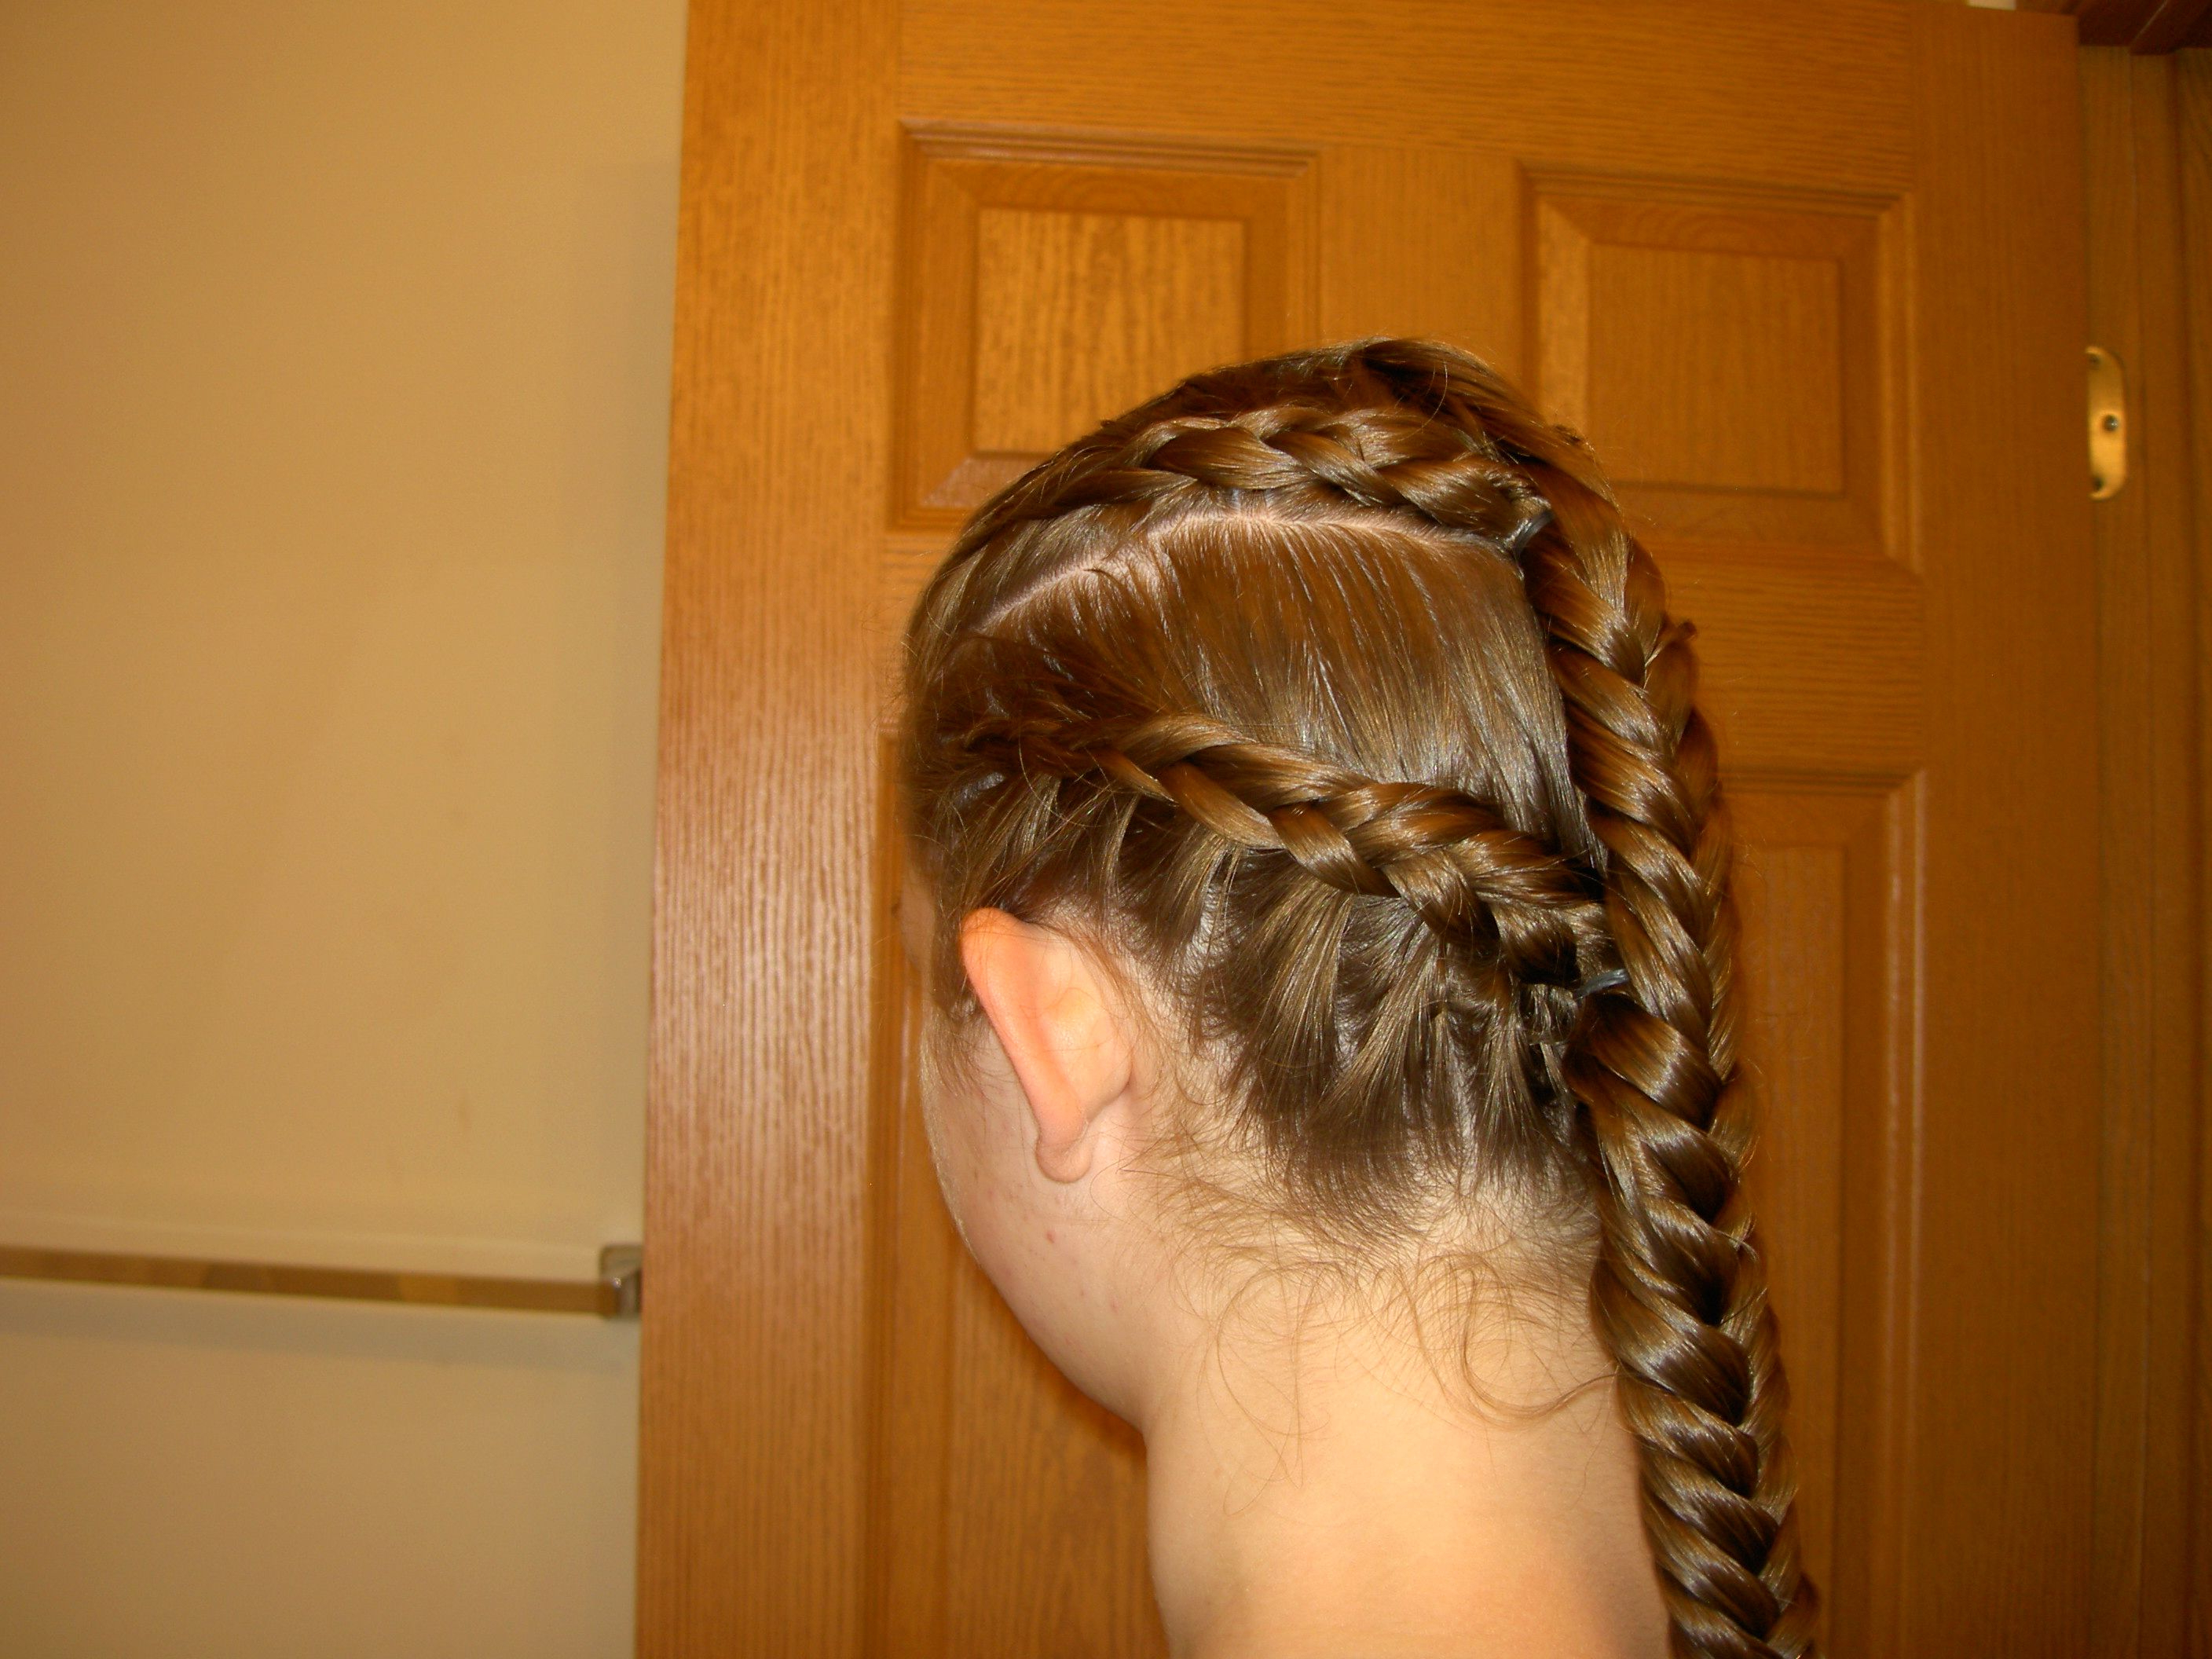 Elvish Battle Braid Hairstyle One Twist, Two Dutch Braids, Two Regarding Favorite Twisted Lace Braid Hairstyles (View 7 of 20)